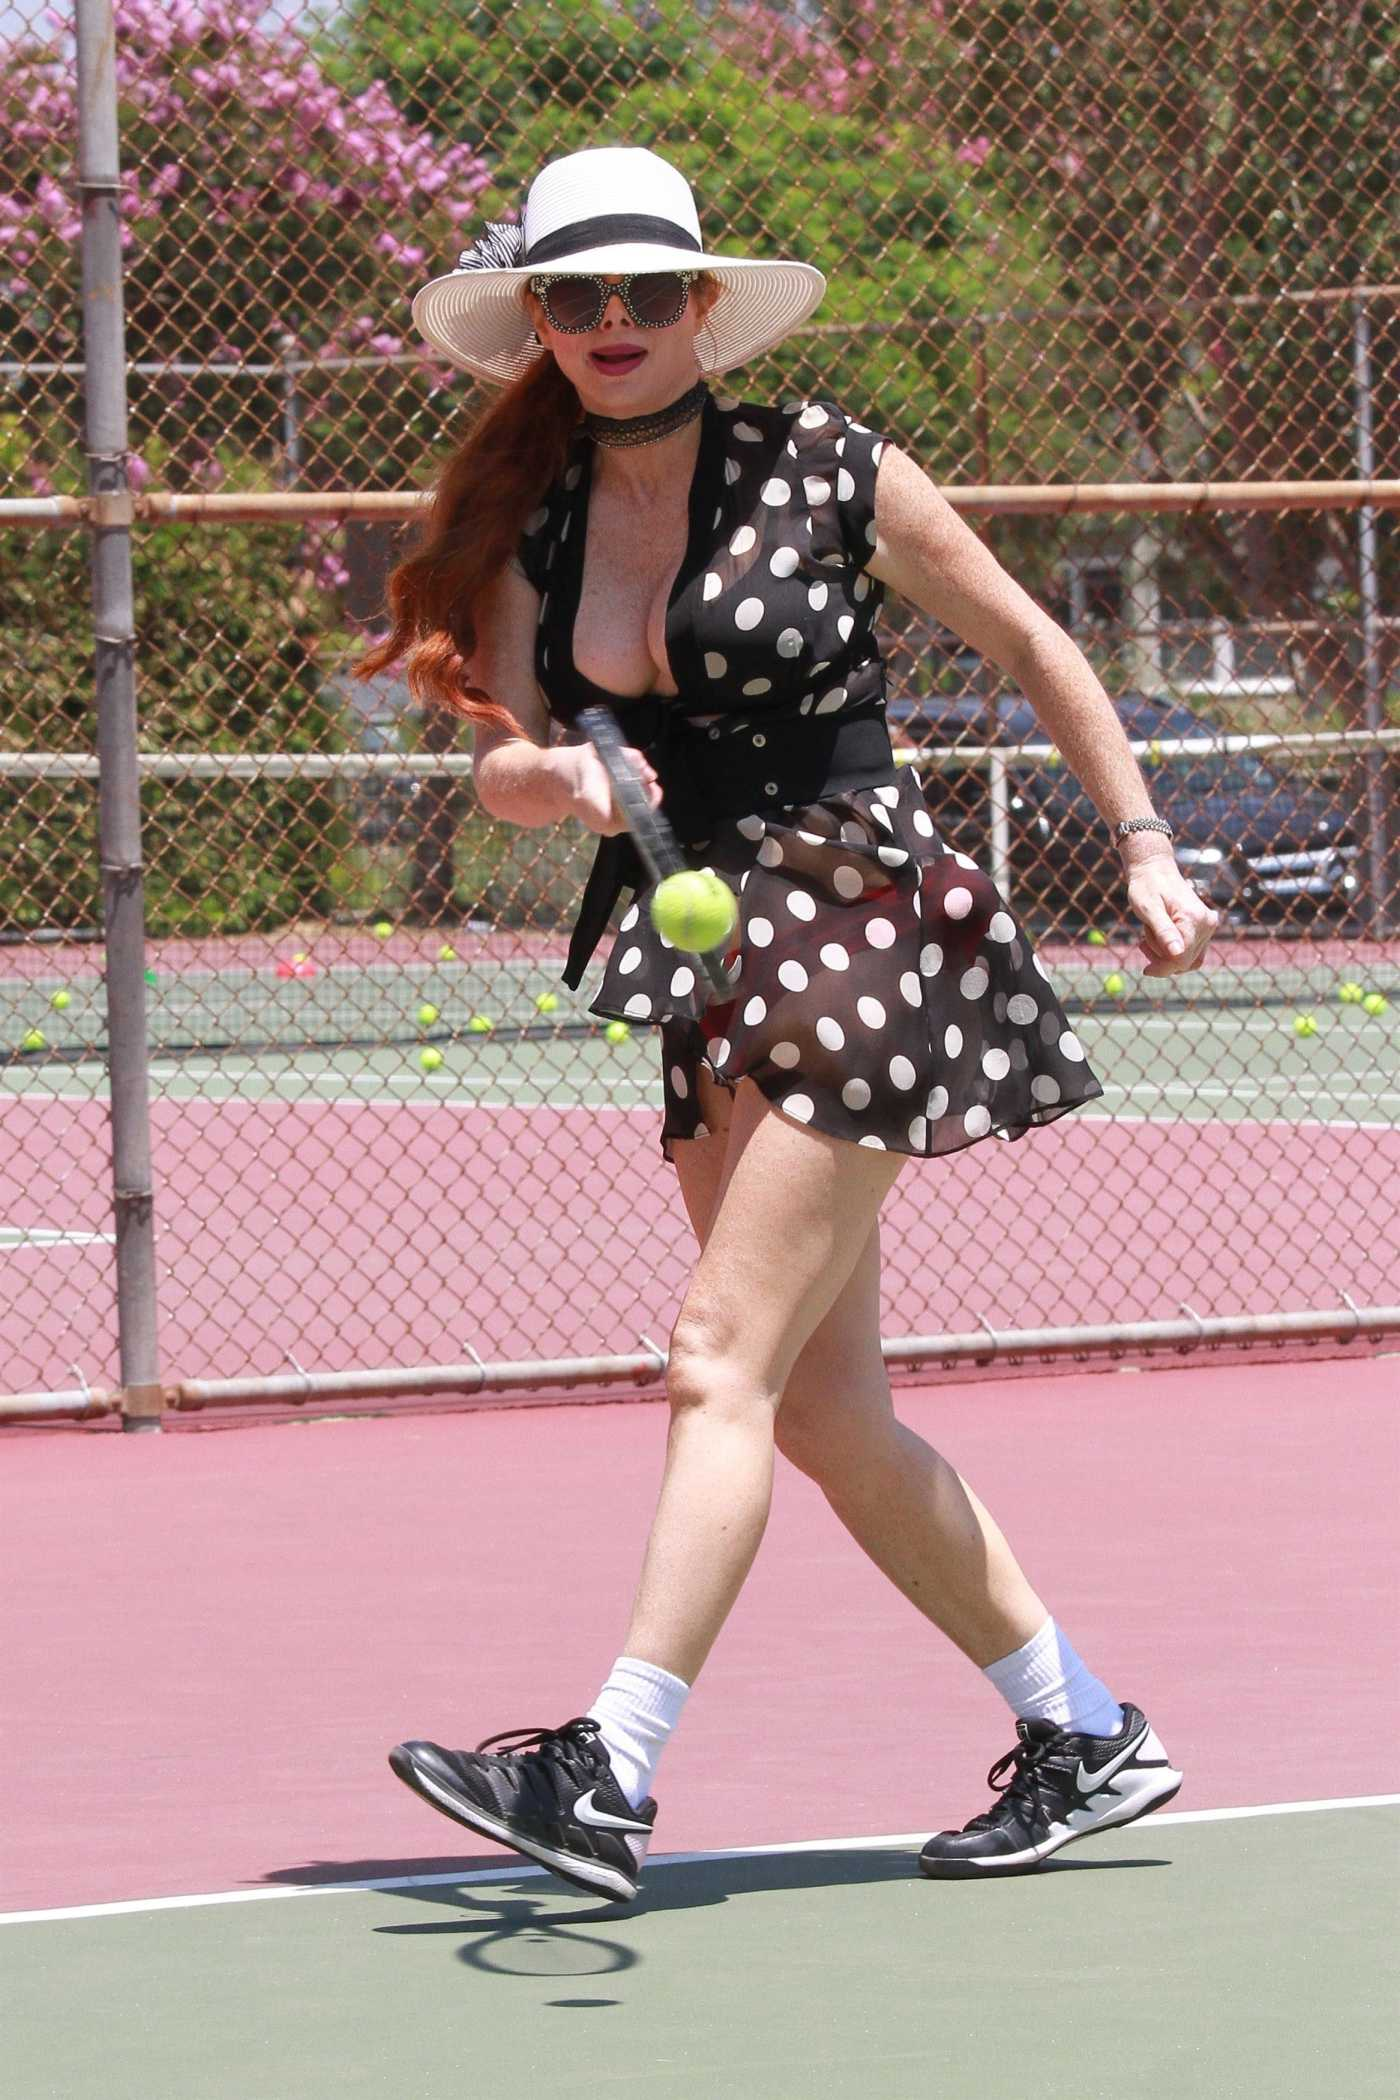 Phoebe Price in a Black Polka Dot Dress Shows off Her Moves on the Tennis Court in Los Angeles 07/23/2020